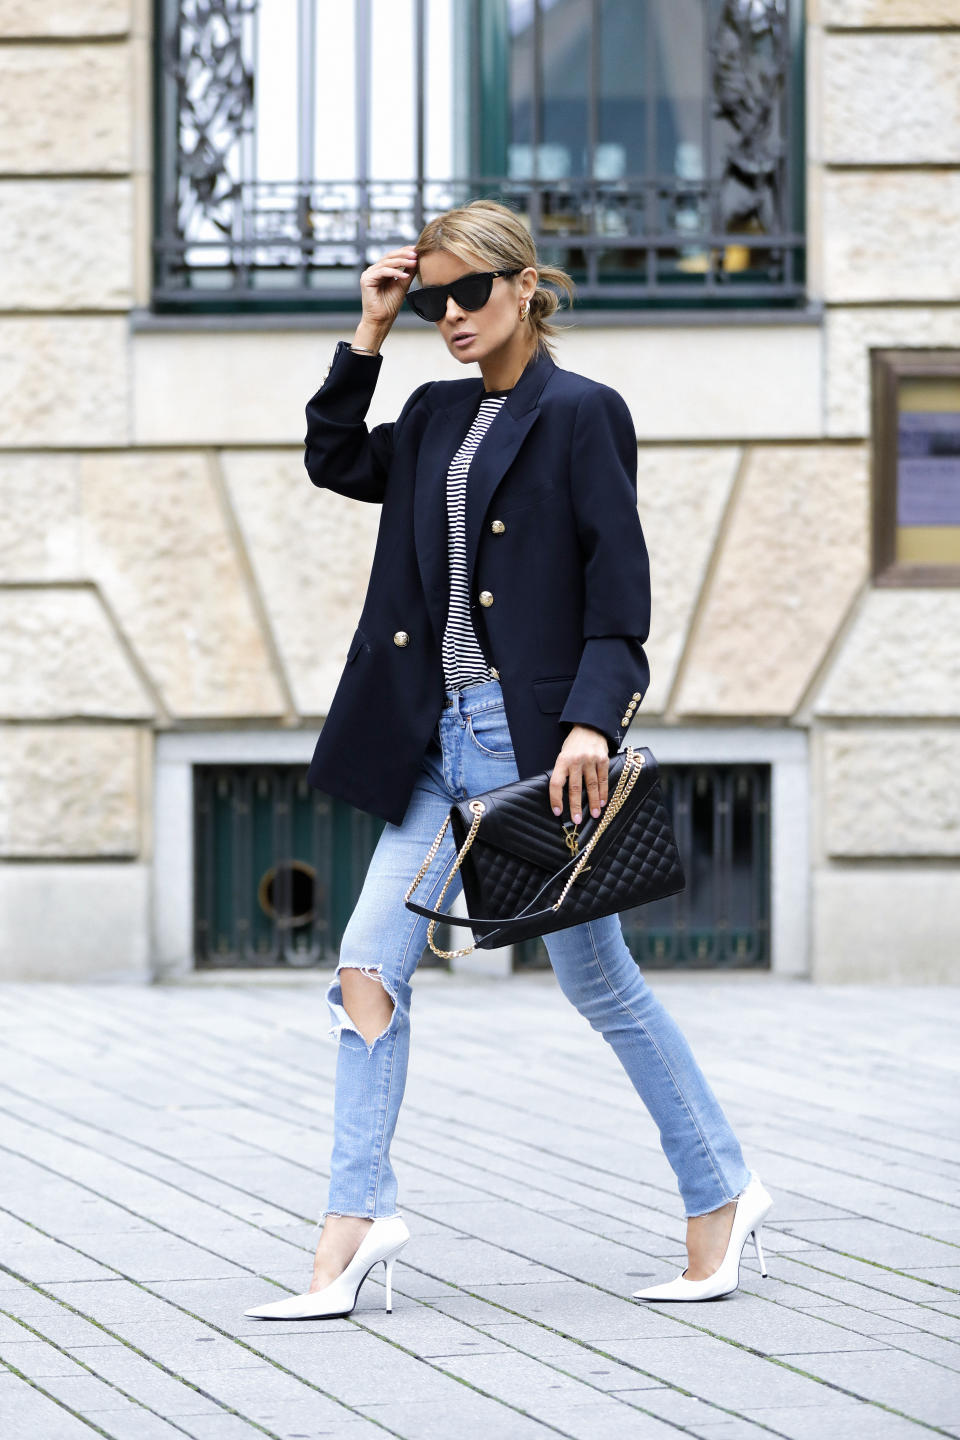 DUSSELDORF, GERMANY - SEPTEMBER 08: Influencer Gitta Banko wearing a blue and white striped t-shirt by Celine and a dark blue blazer by Celine with gold buttons, light blue skinny denim jeans by Balenciaga, white pumps by Balenciaga, a black bag by Saint Laurent, sunglasses by Bottega Veneta, gold earrings by Balenciaga and silver and gold bracelets by Celine during a street style shooting on September 8, 2020 at Breuninger in Dusseldorf, Germany. (Photo by Streetstyleshooters/Getty Images)